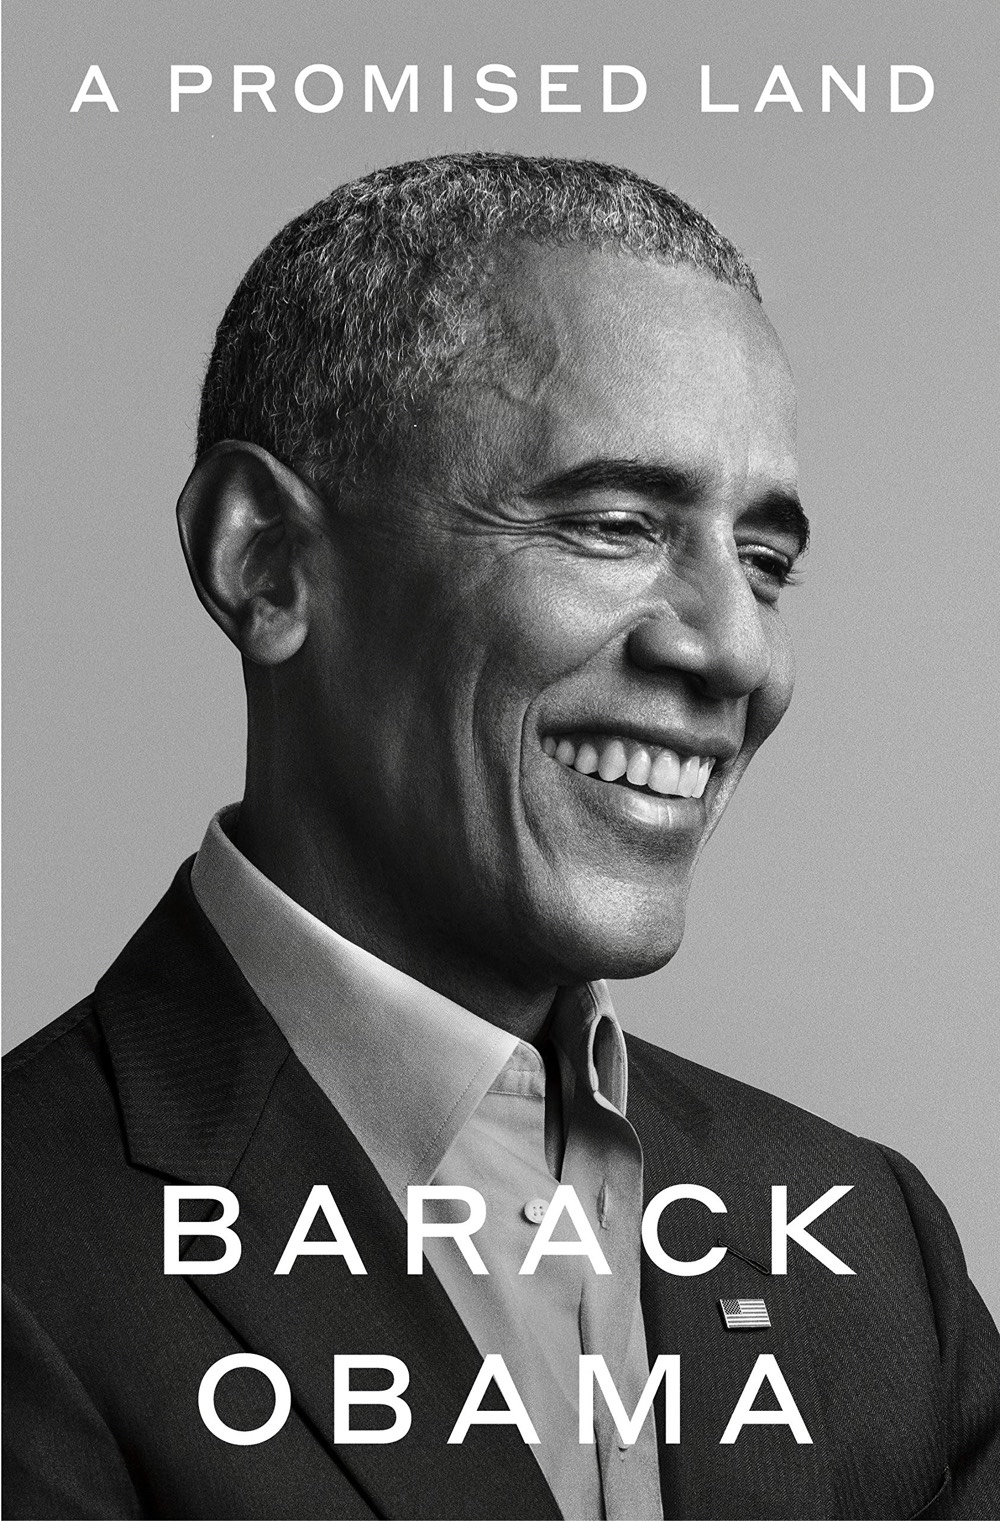 Cover of Barack Obama's book, A Promised Land